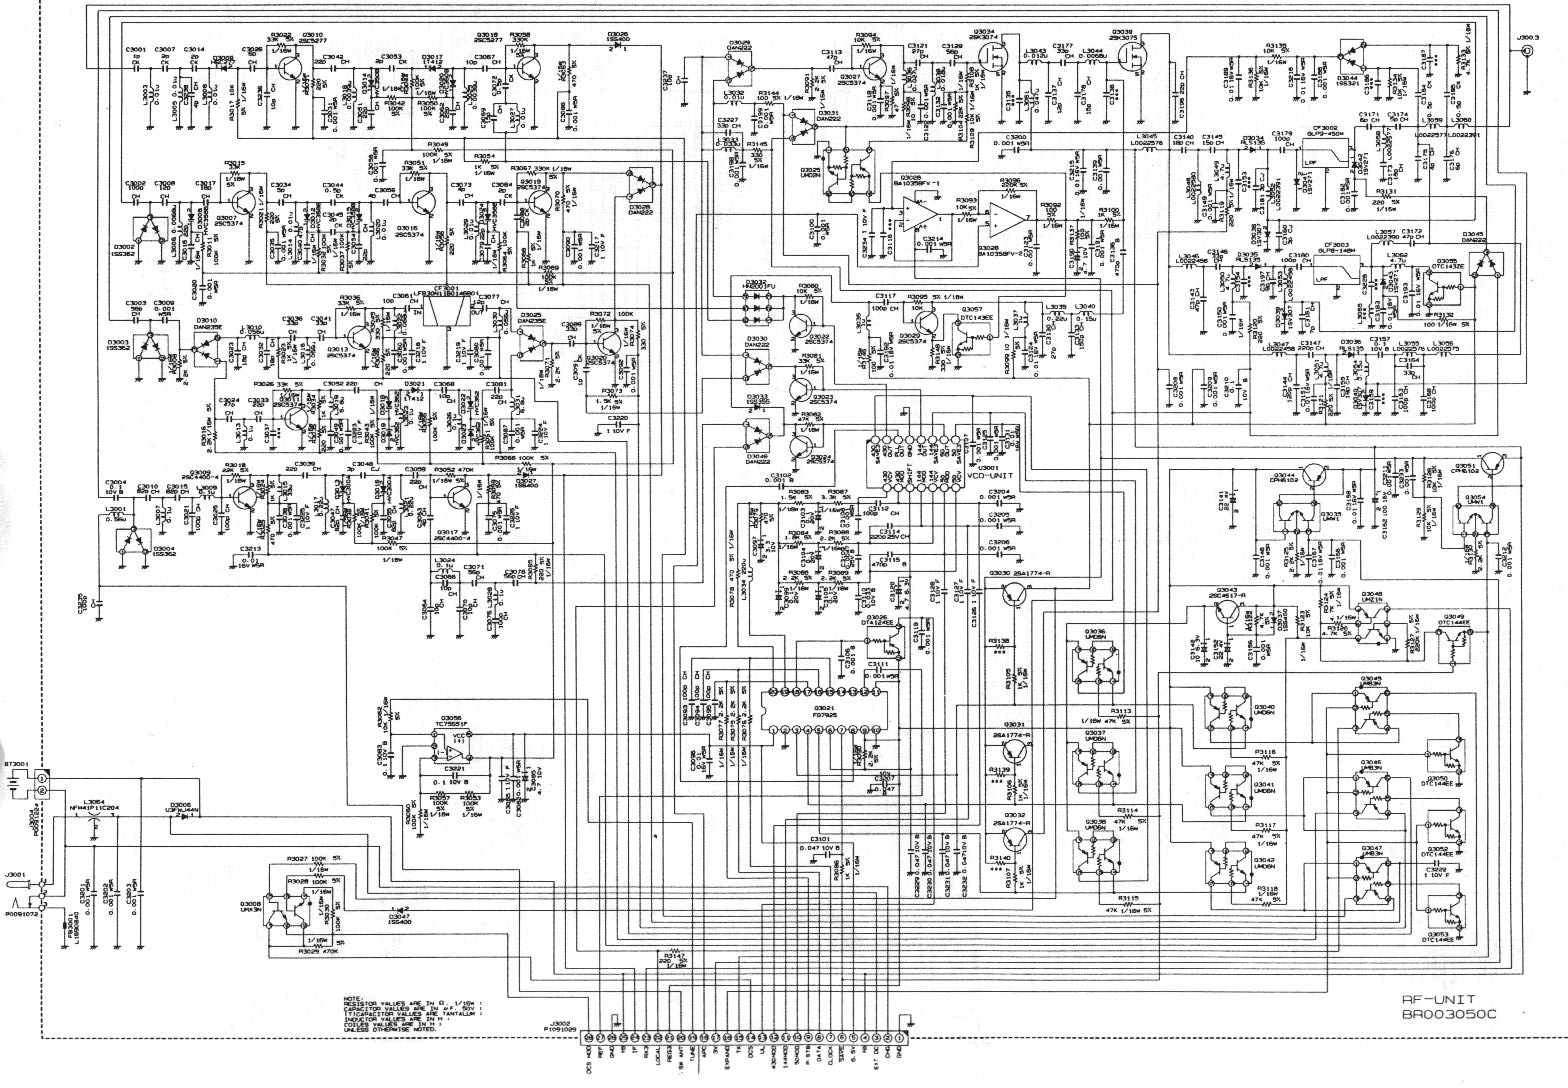 YAESU VX 5 Schematic c index of pub radio_manuals yaesu Yaesu G-450A at bayanpartner.co